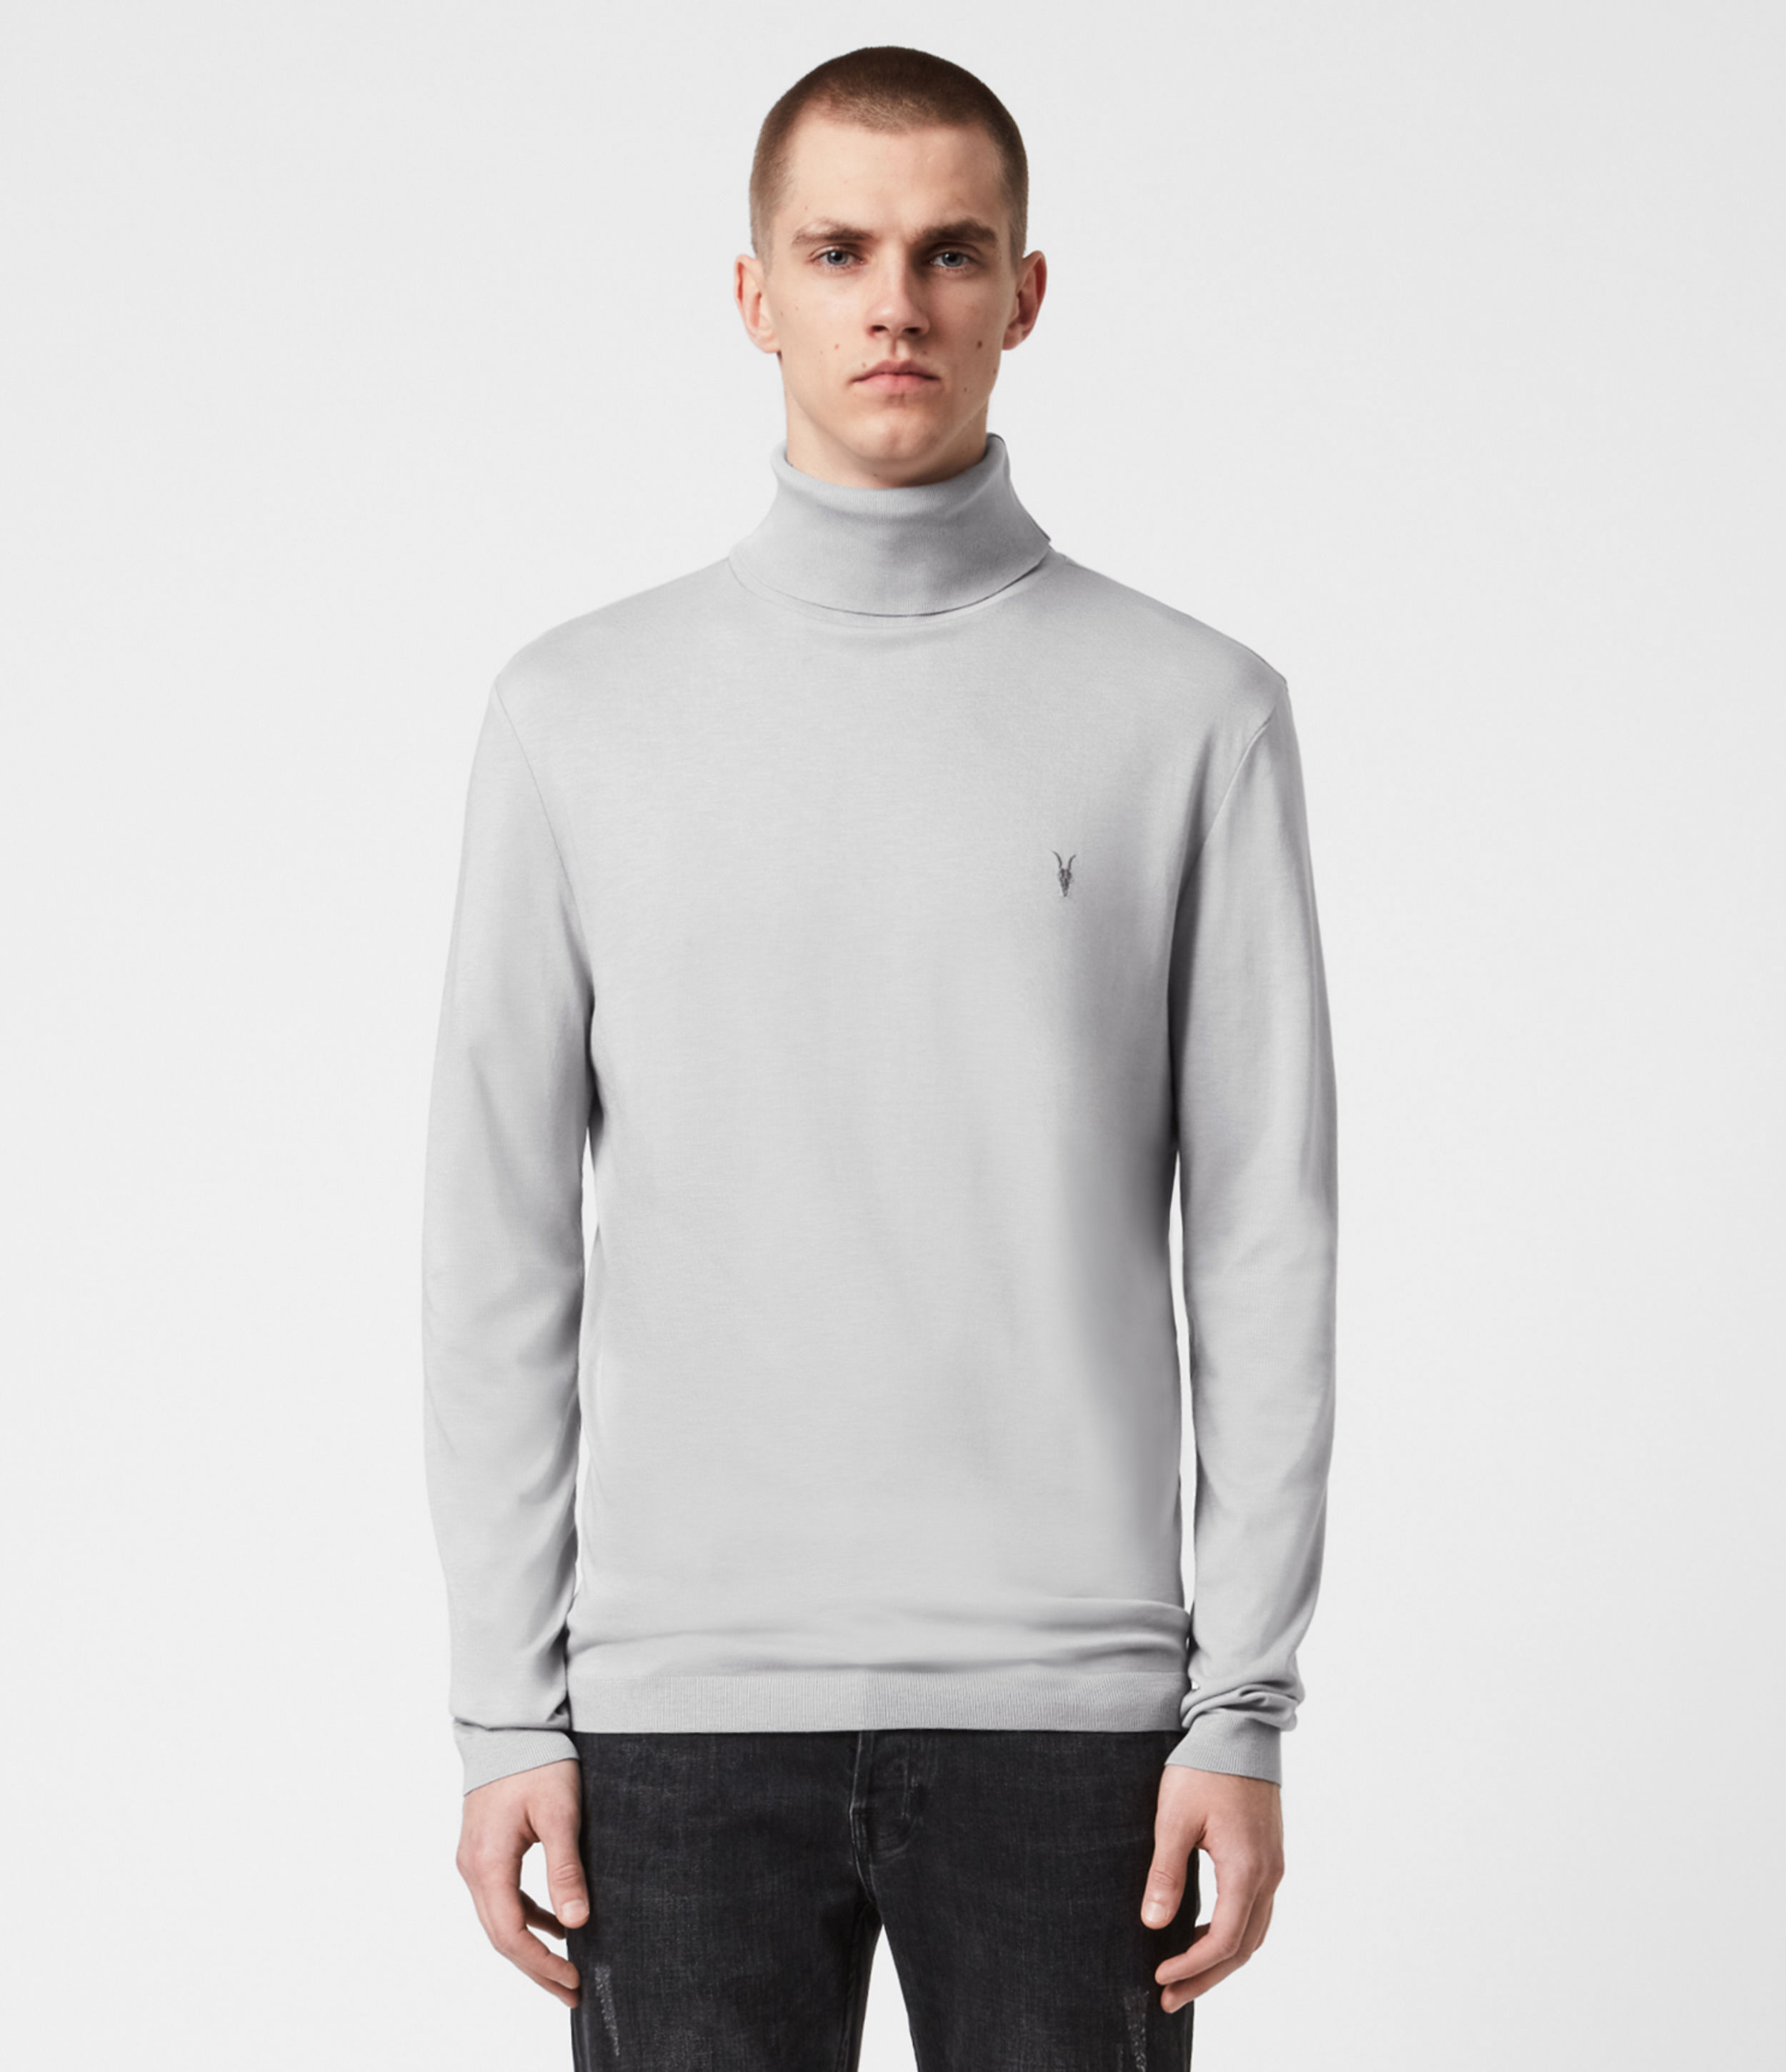 AllSaints Men's Cotton Embroidered Lightweight Parlour Roll Neck Top, Grey, Size: XS